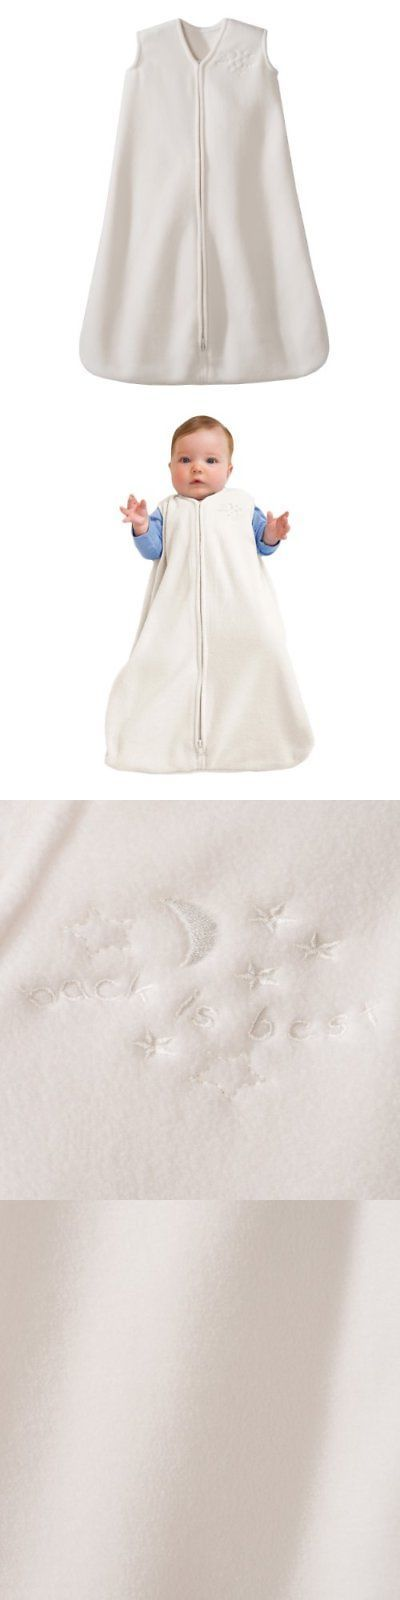 Sleeping Bags and Sleepsacks 100989: Halo Sleepsack Micro-Fleece Wearable Blanket Cream Small -> BUY IT NOW ONLY: $30.58 on eBay!